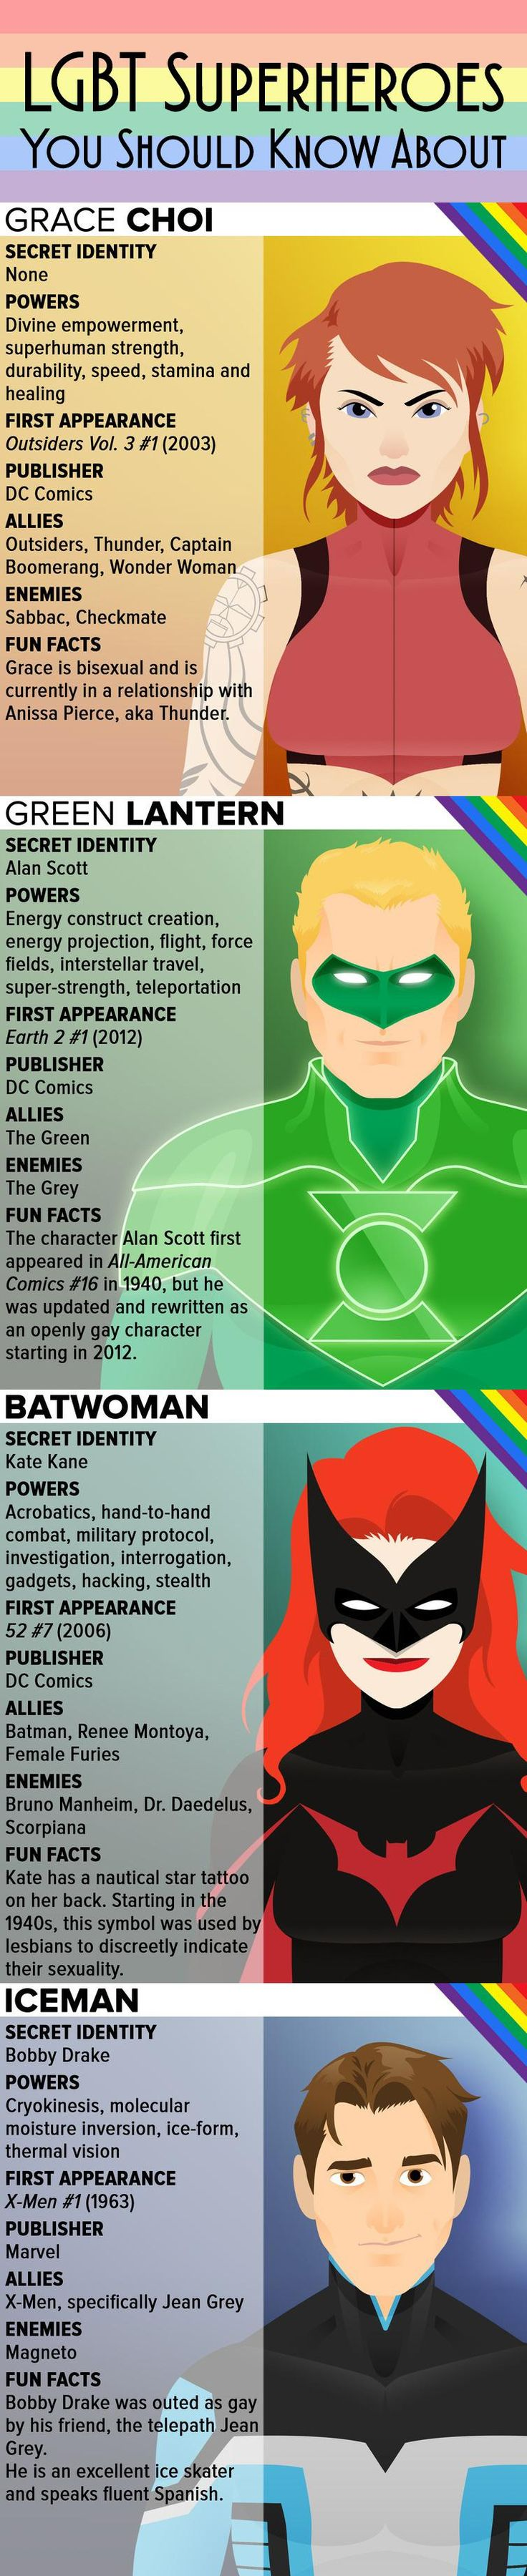 Here are just some of the popular superheroes that are celebrating some super pride.